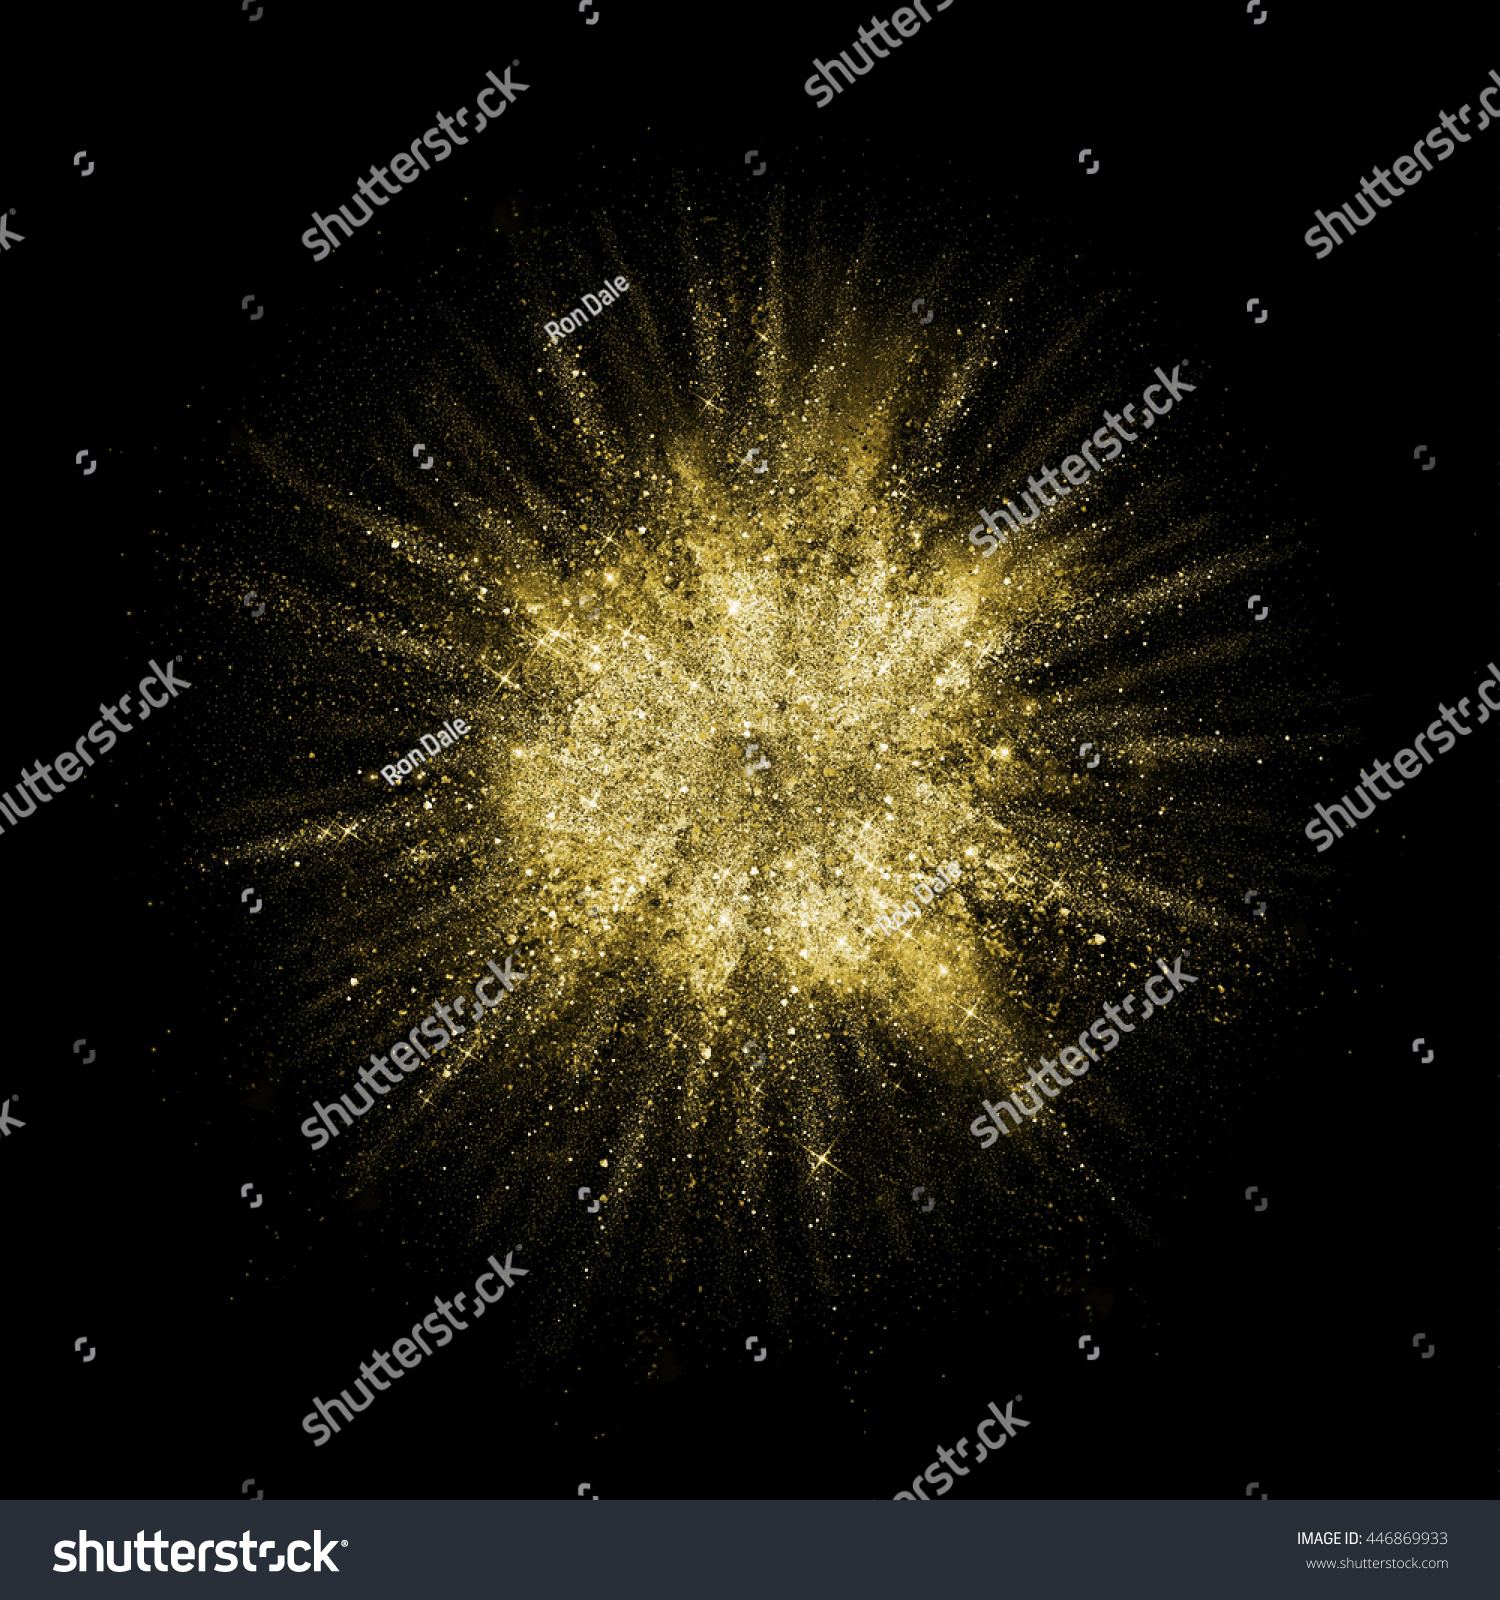 Black And Gold Wallpaper Shutterstock Editor 是一款在线图片和照片编辑器。